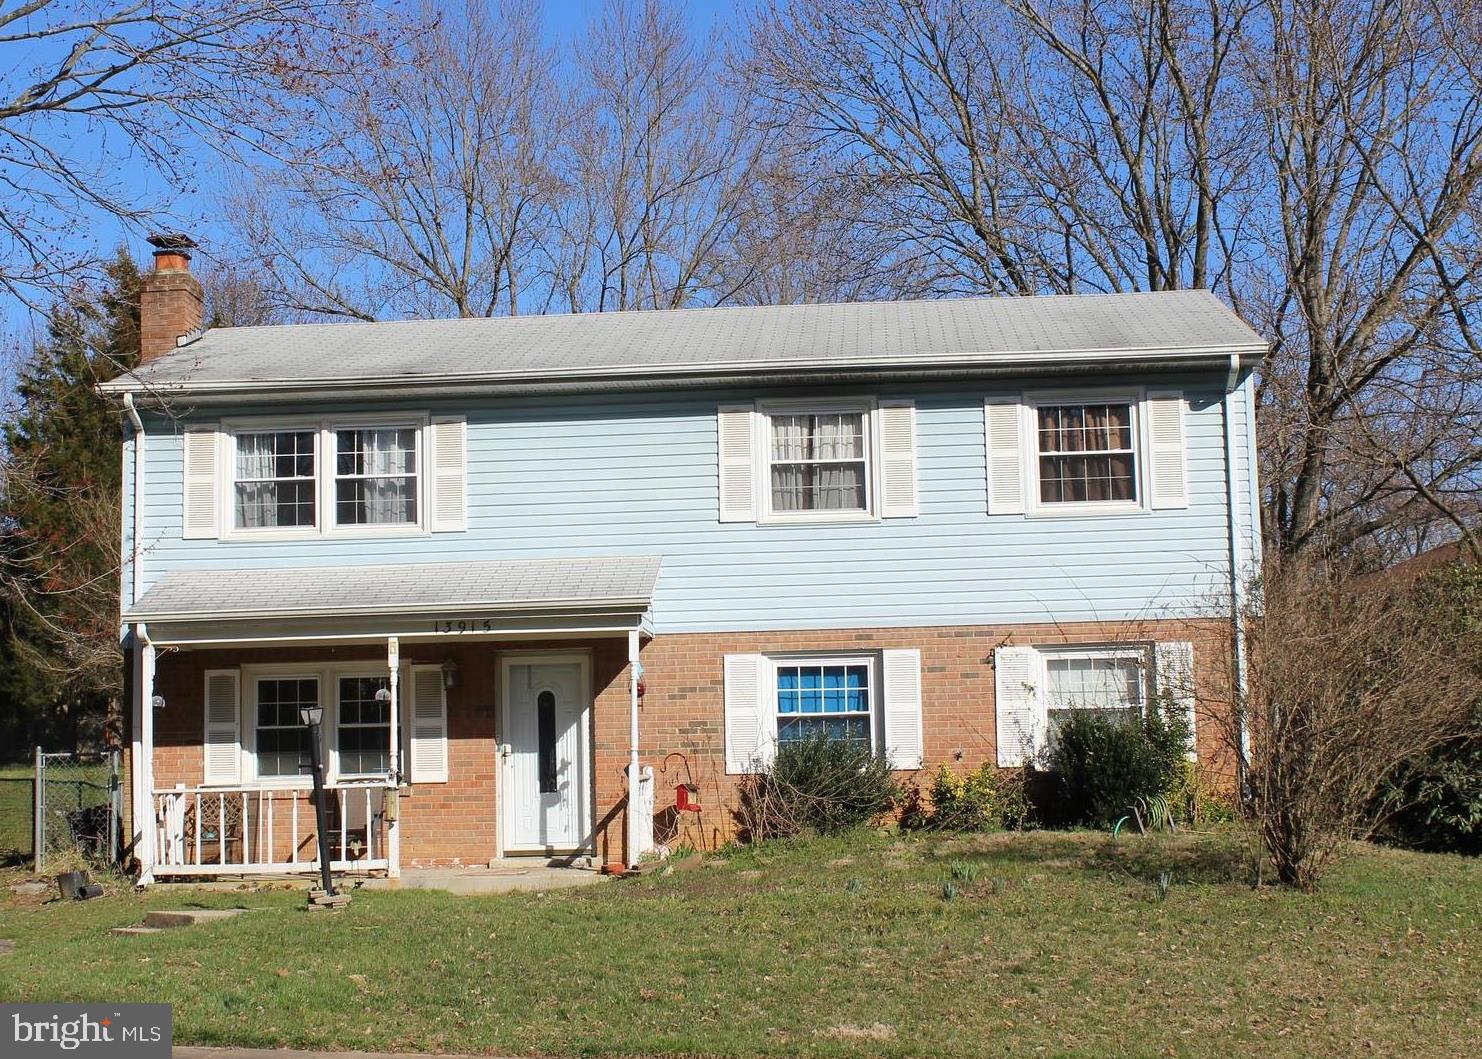 Thinking about giving interior designers a run for their money? Then this house offers a perfect opportunity for you to take. Here's some features you have to start with: hardwood floors, granite countertops, remodeling in bathrooms have been done, newer hot water heater, roof 11 years old. Now the rest is up to you to take this 2 levels, 4 bedrooms, 2.5 baths, house with great bones to the next level.